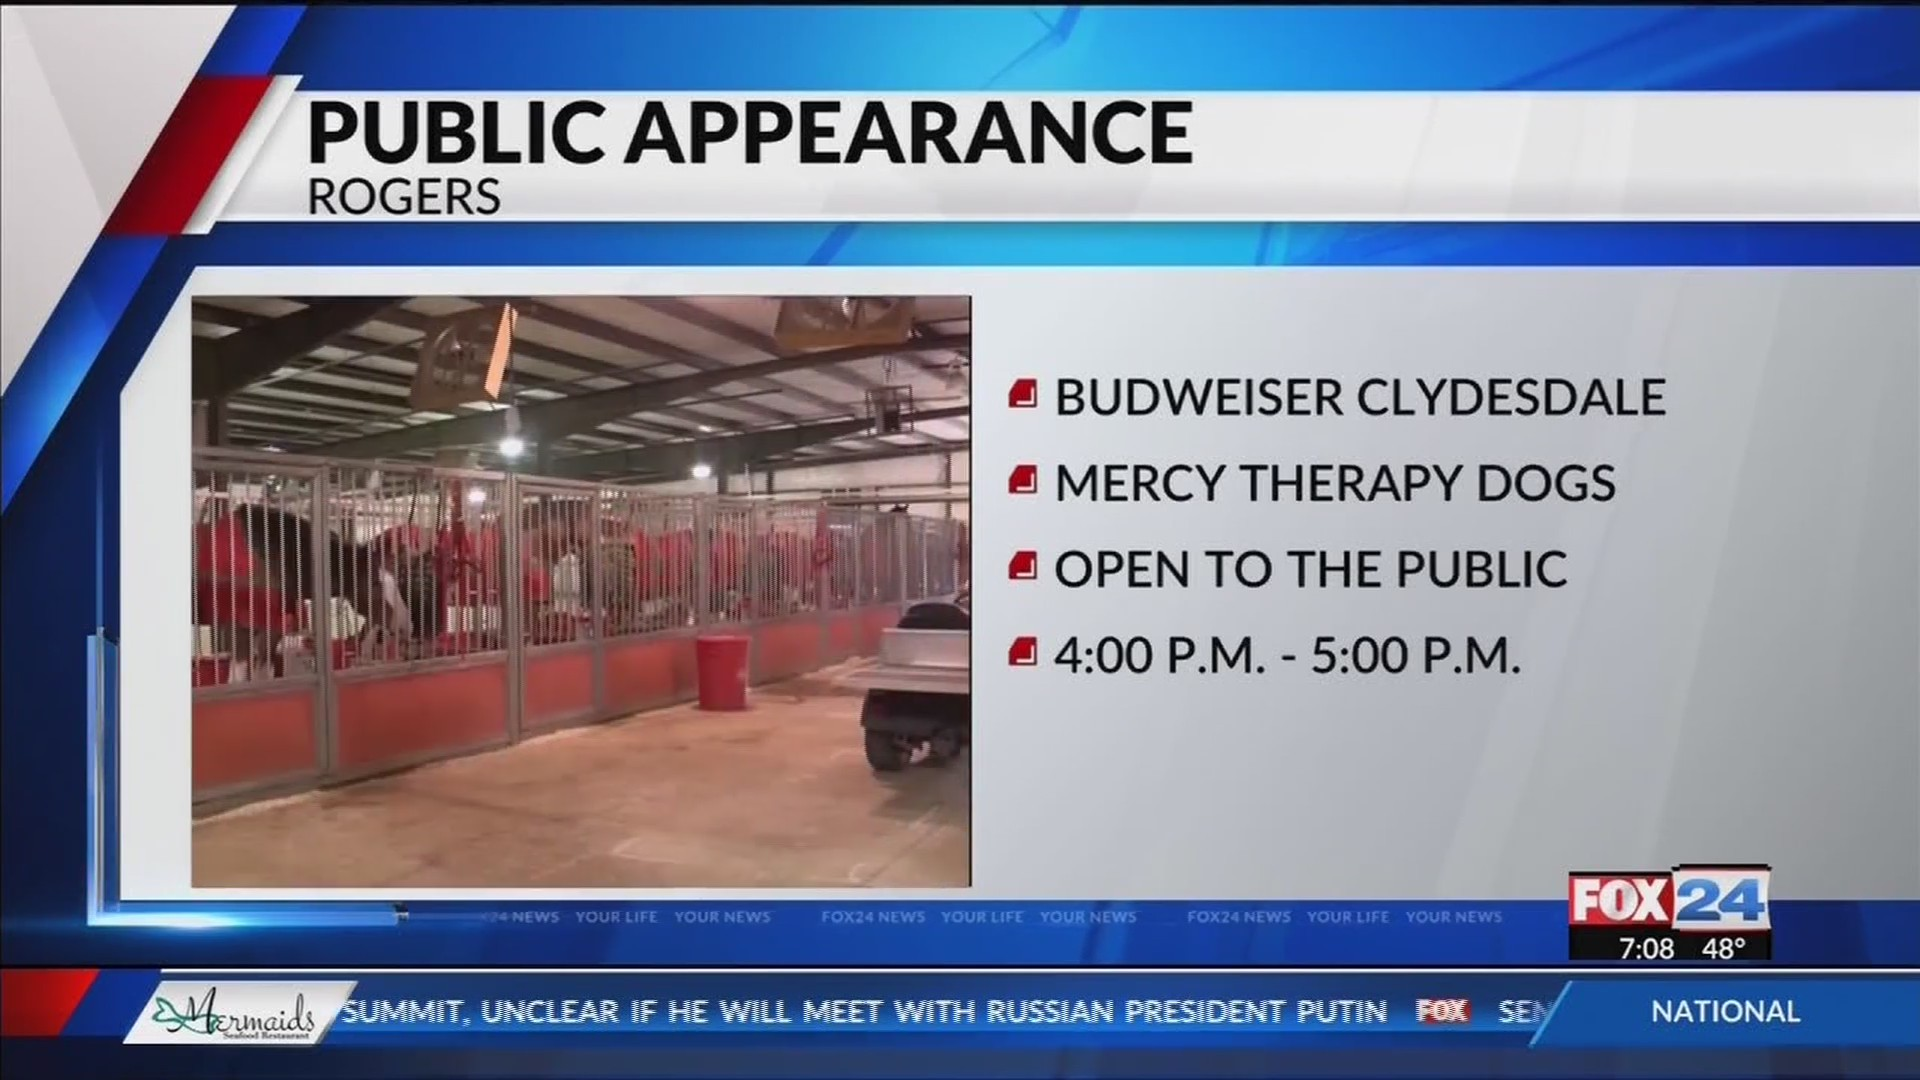 Budweiser_Clydesdale_Making_Appearance_i_0_20181129131513